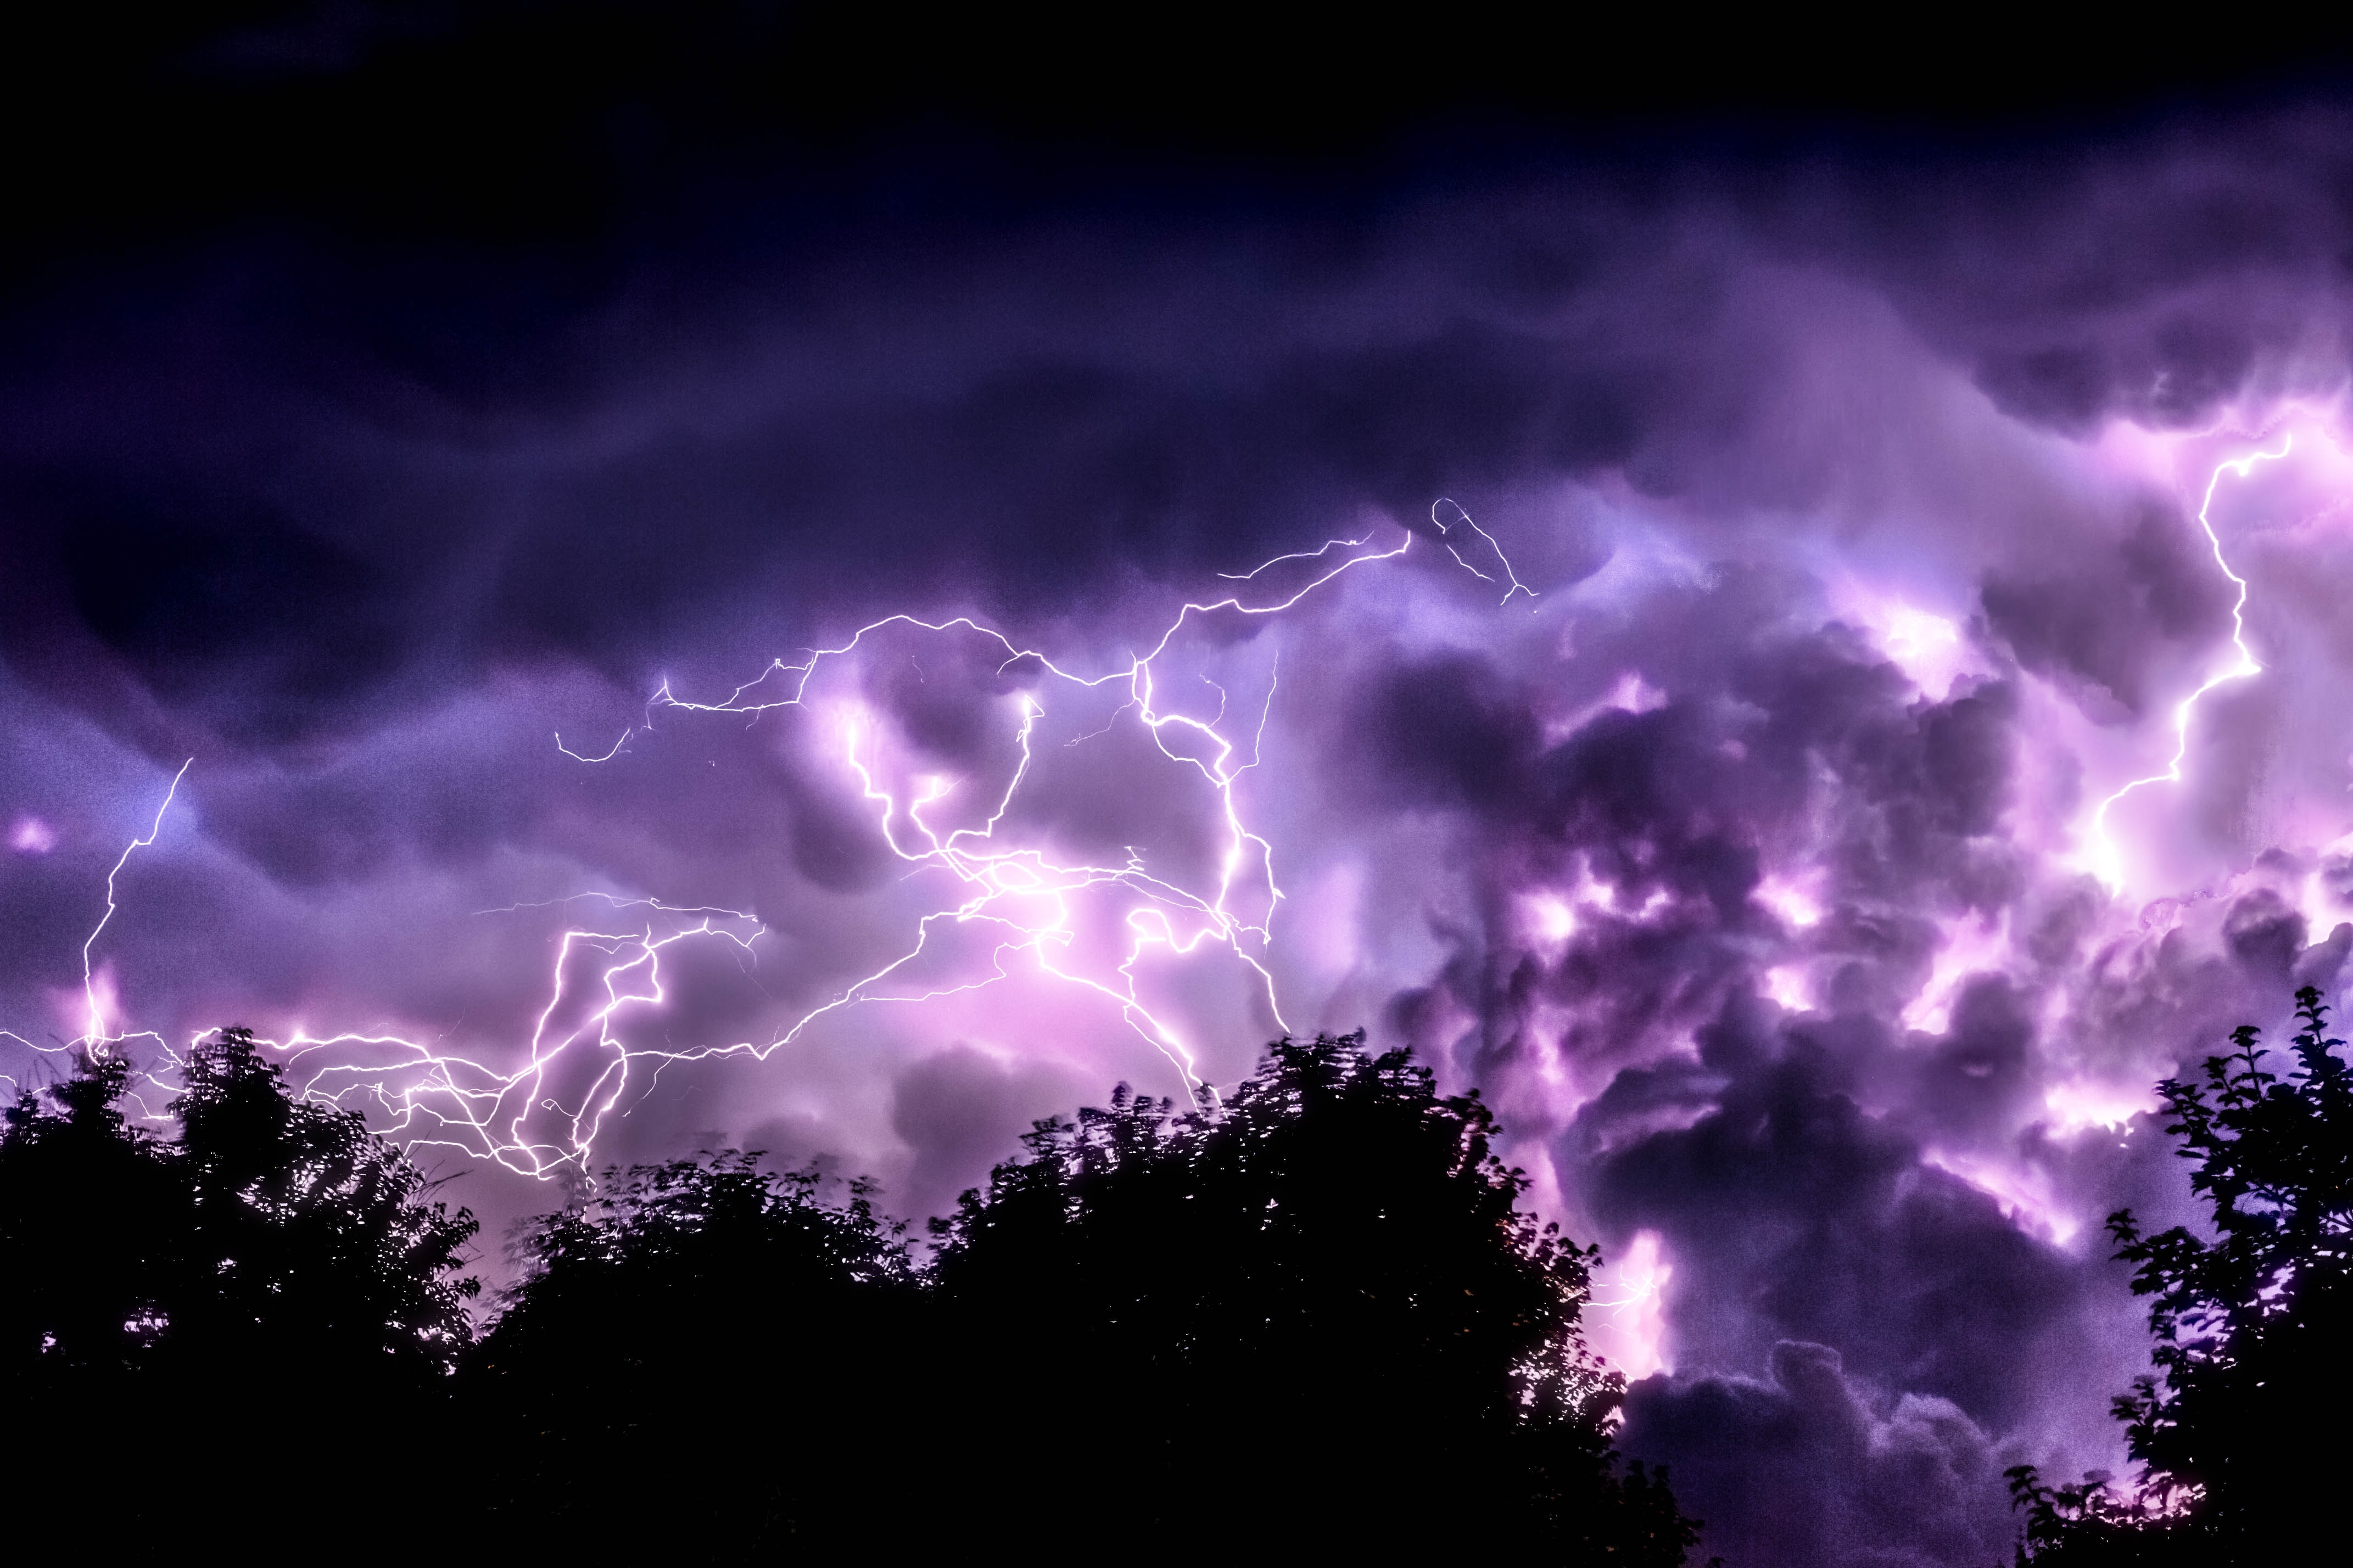 A view of purple lightning and thunder bolt in the sky with trees in silhouette